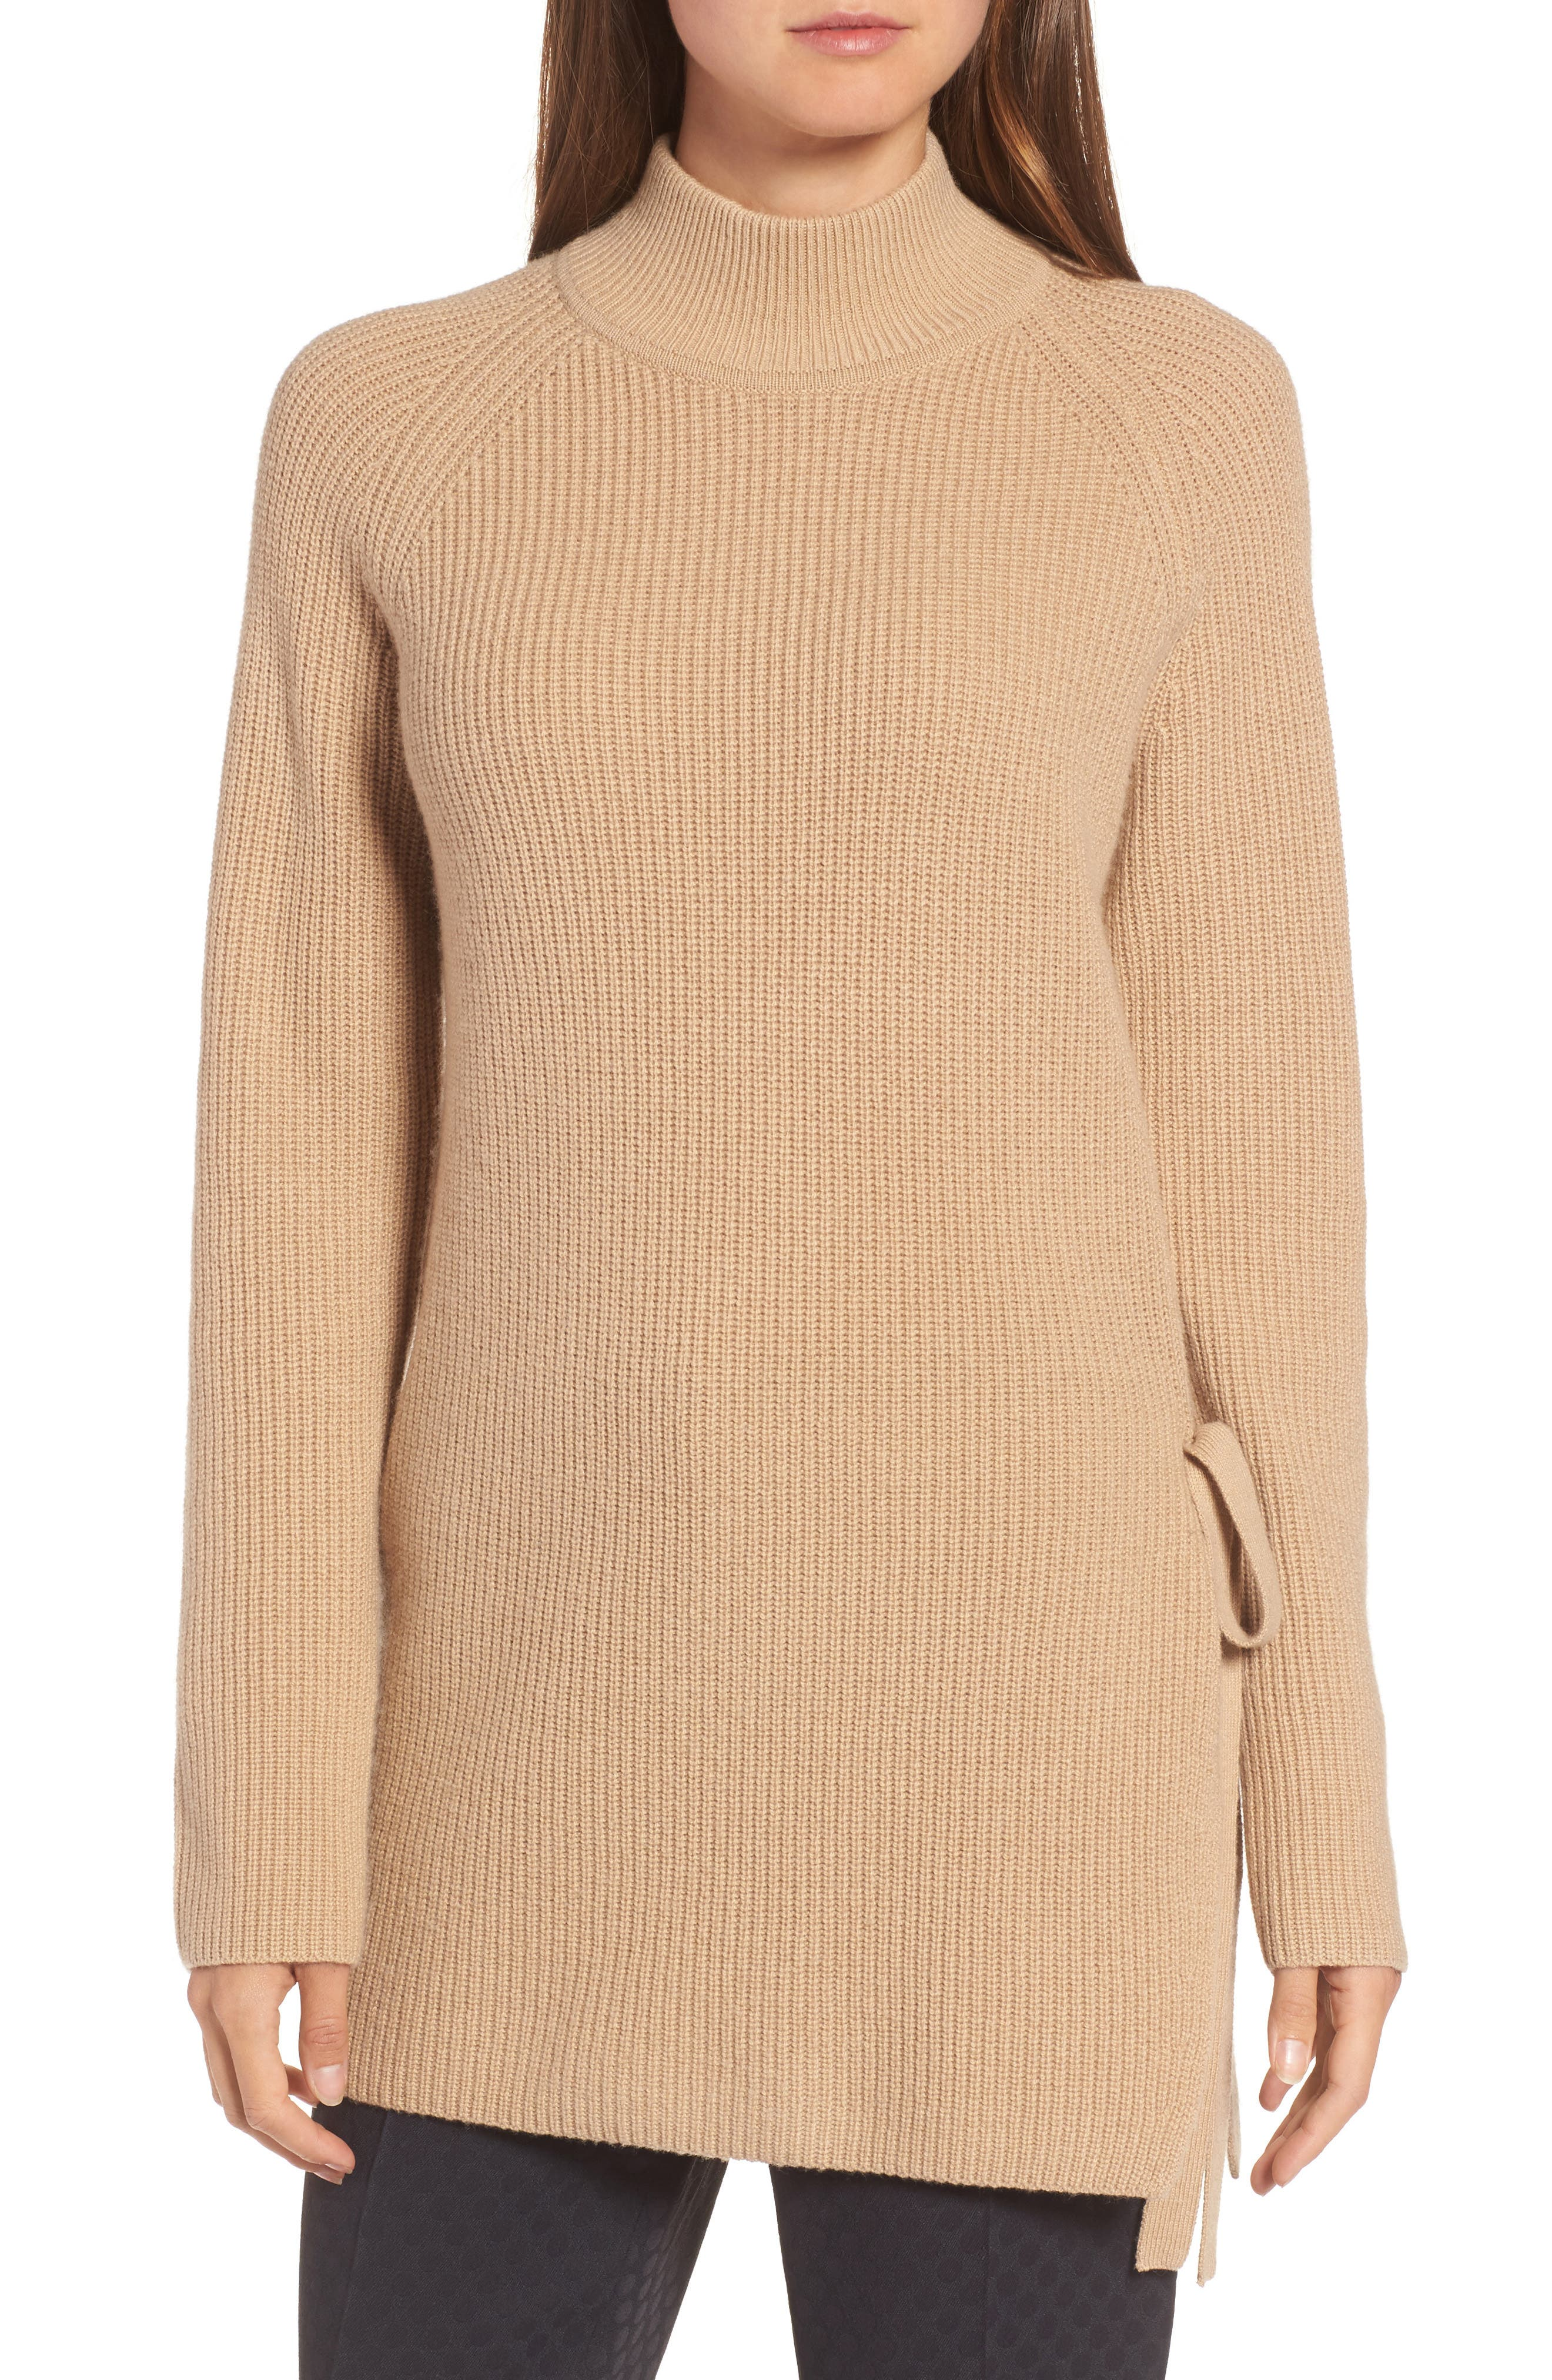 Filda Tie Side Sweater,                             Main thumbnail 1, color,                             Warm Camel